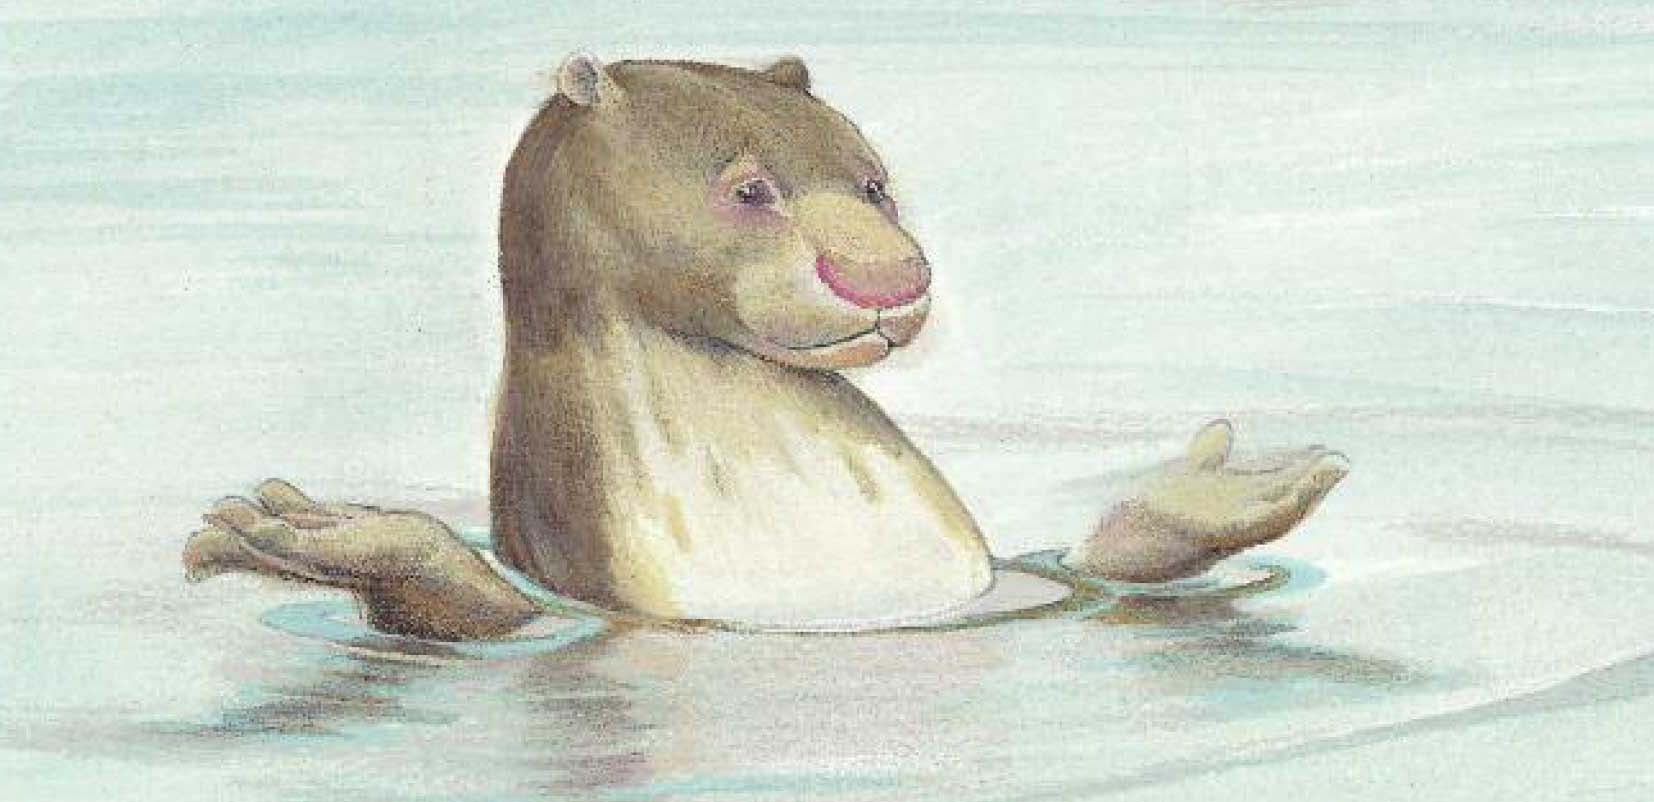 Otter character from Mister Mole's Stove decodable book